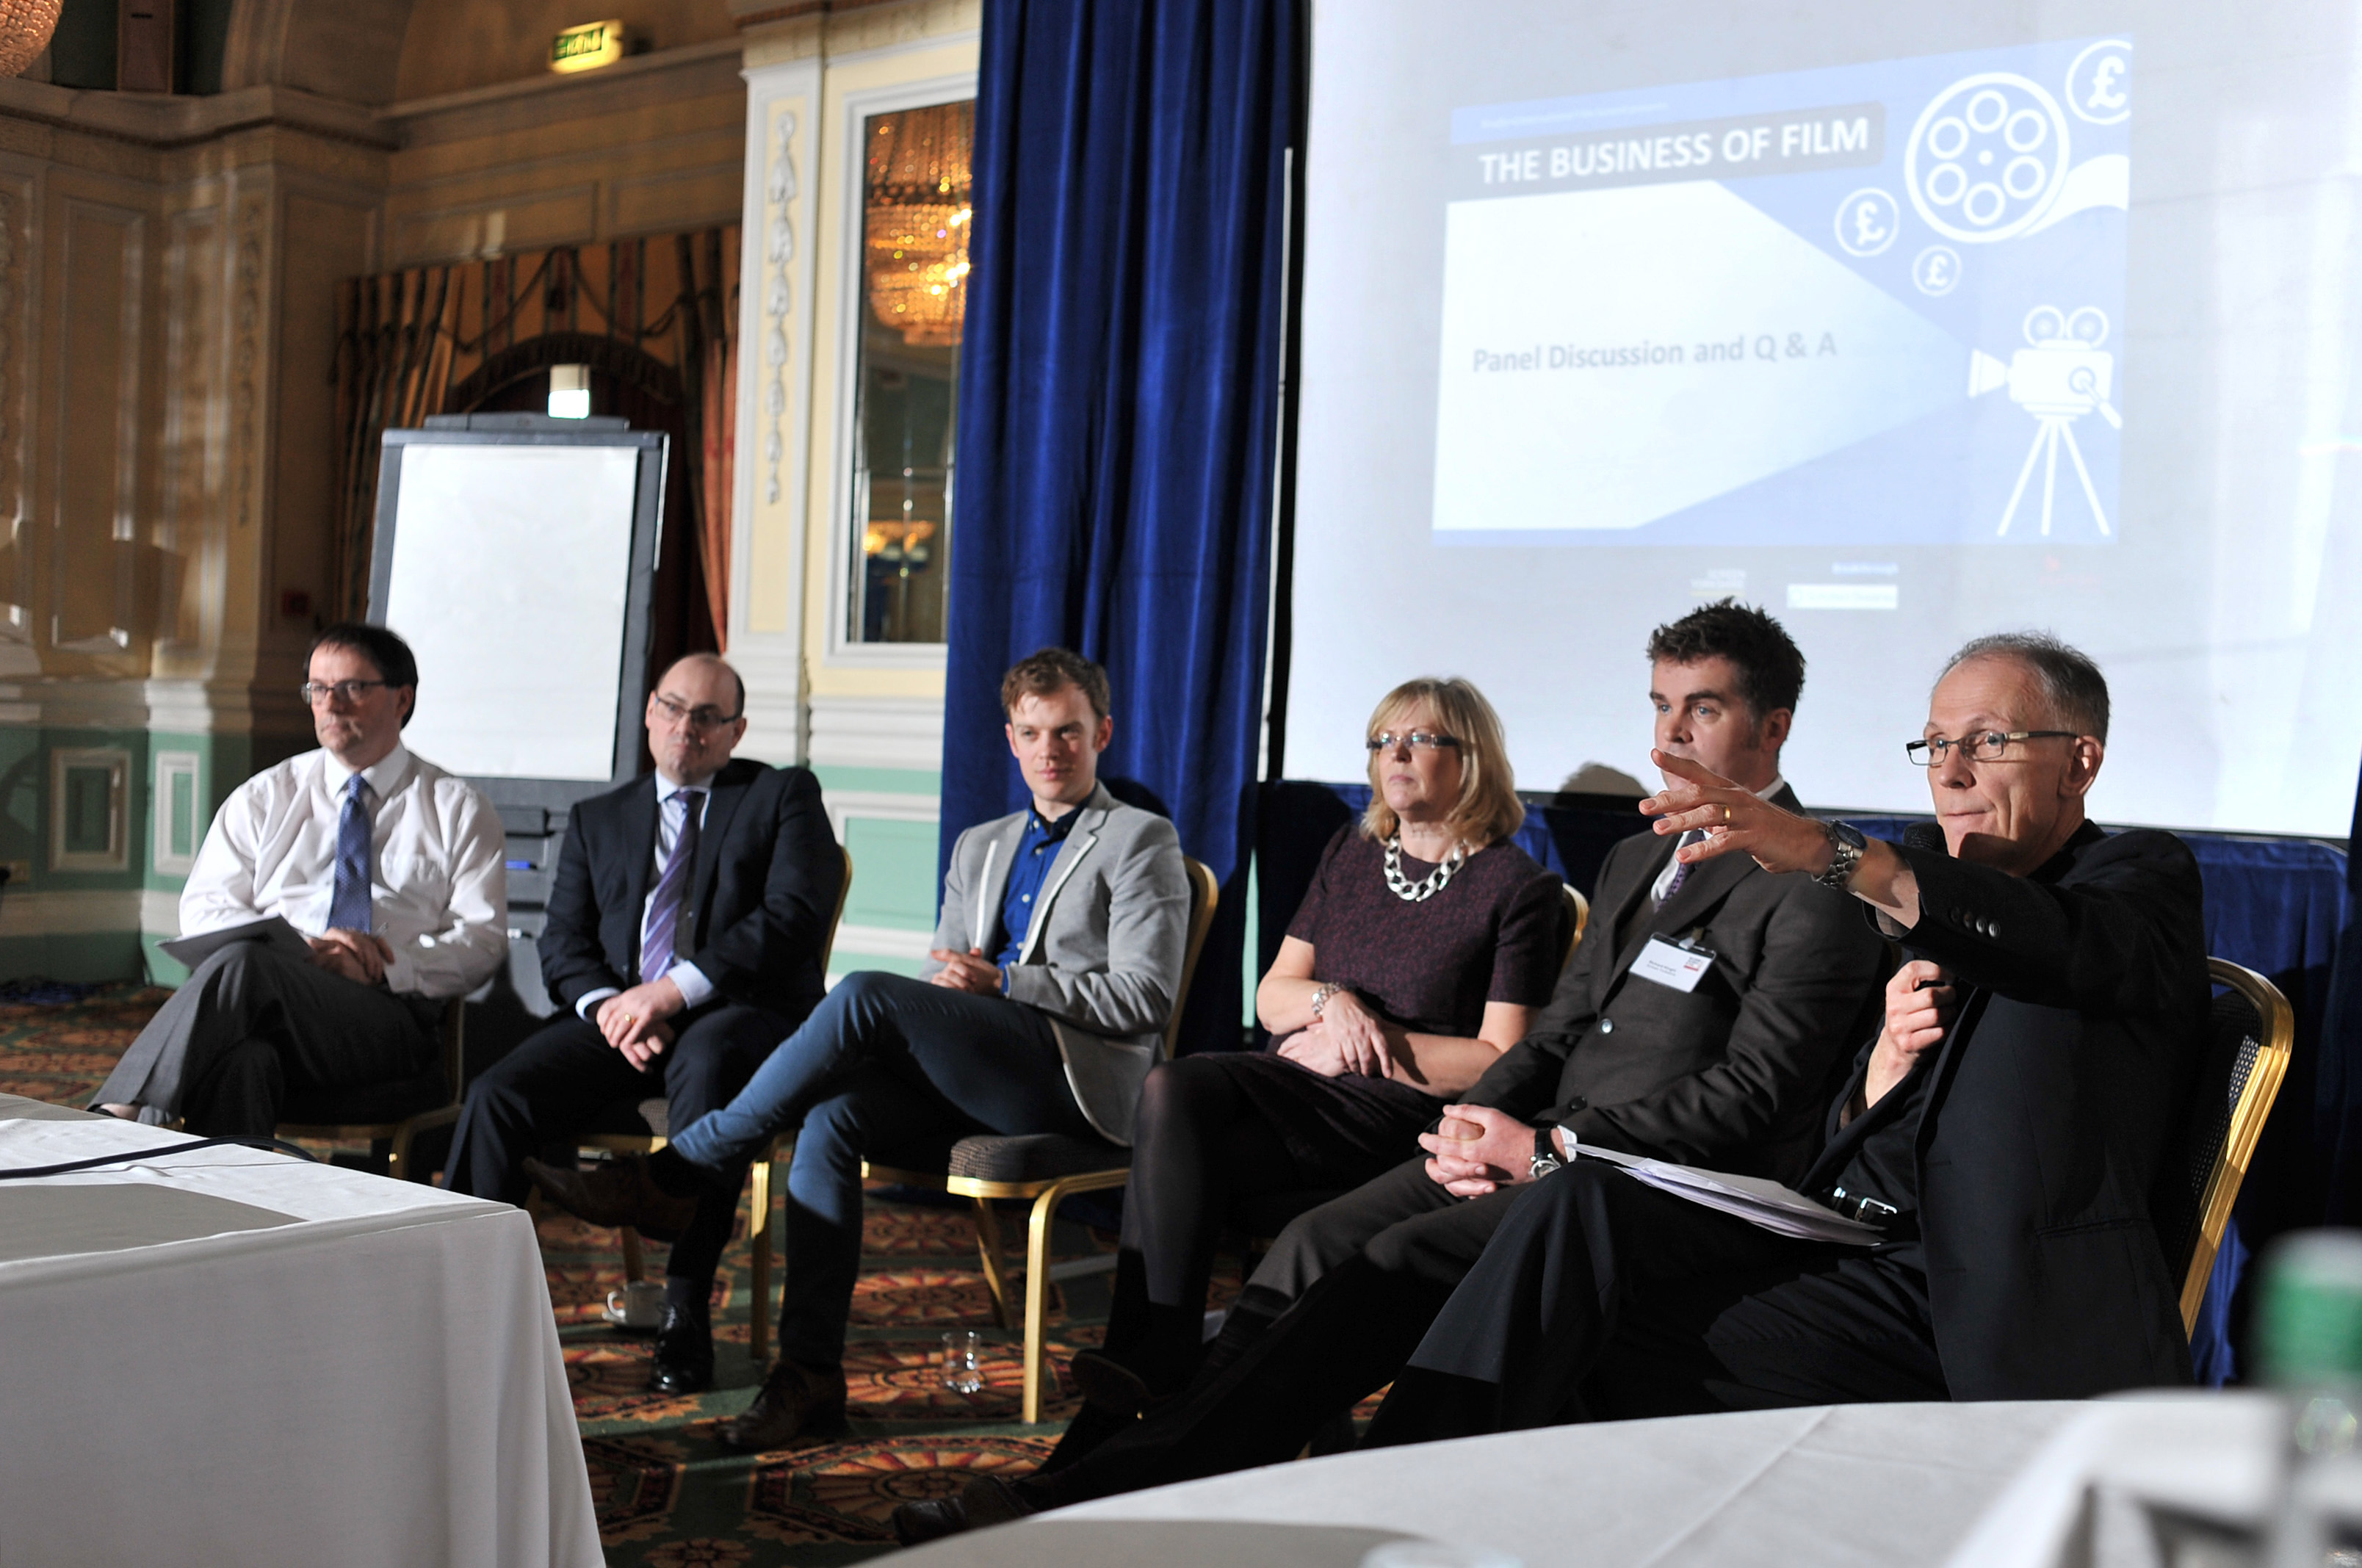 Bradford International Film Summit 2015The Business of Film05.03.15